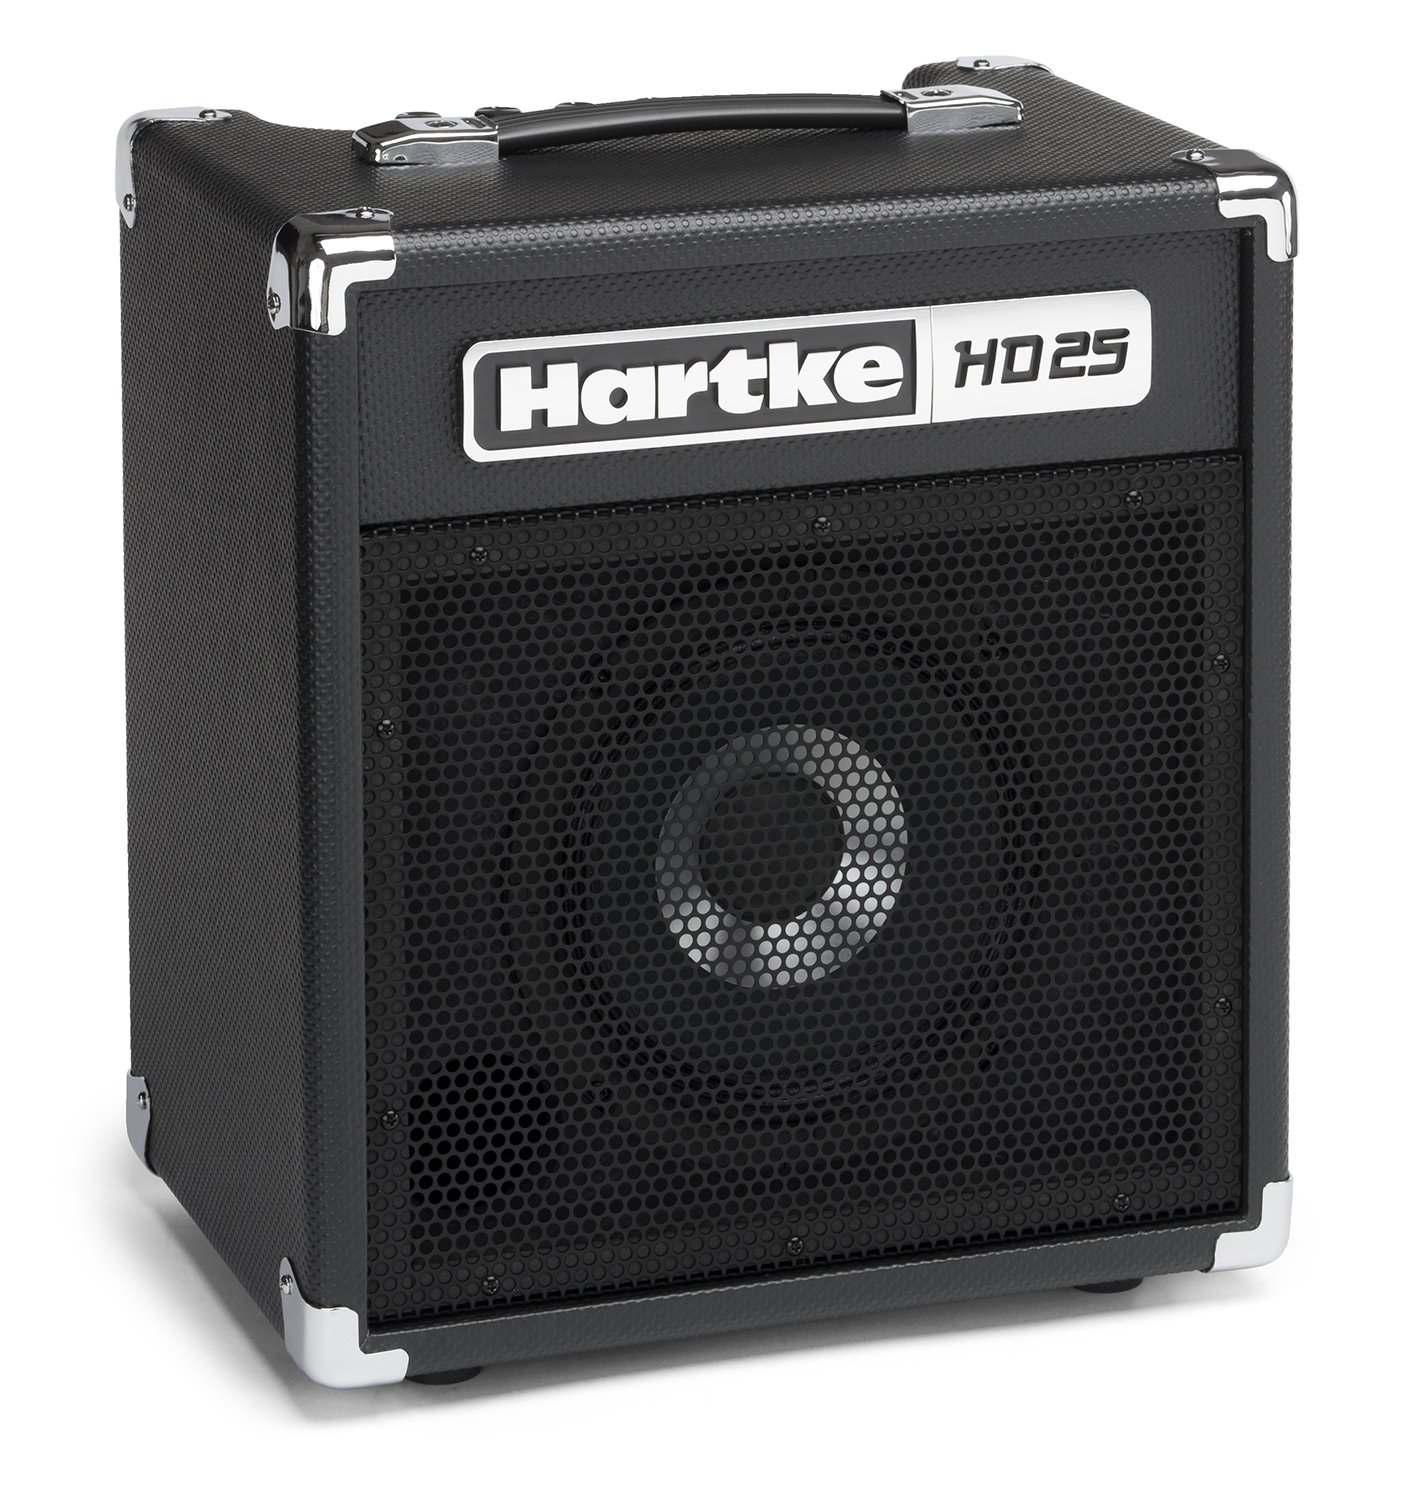 2. Hartke HD25 Bass Combo